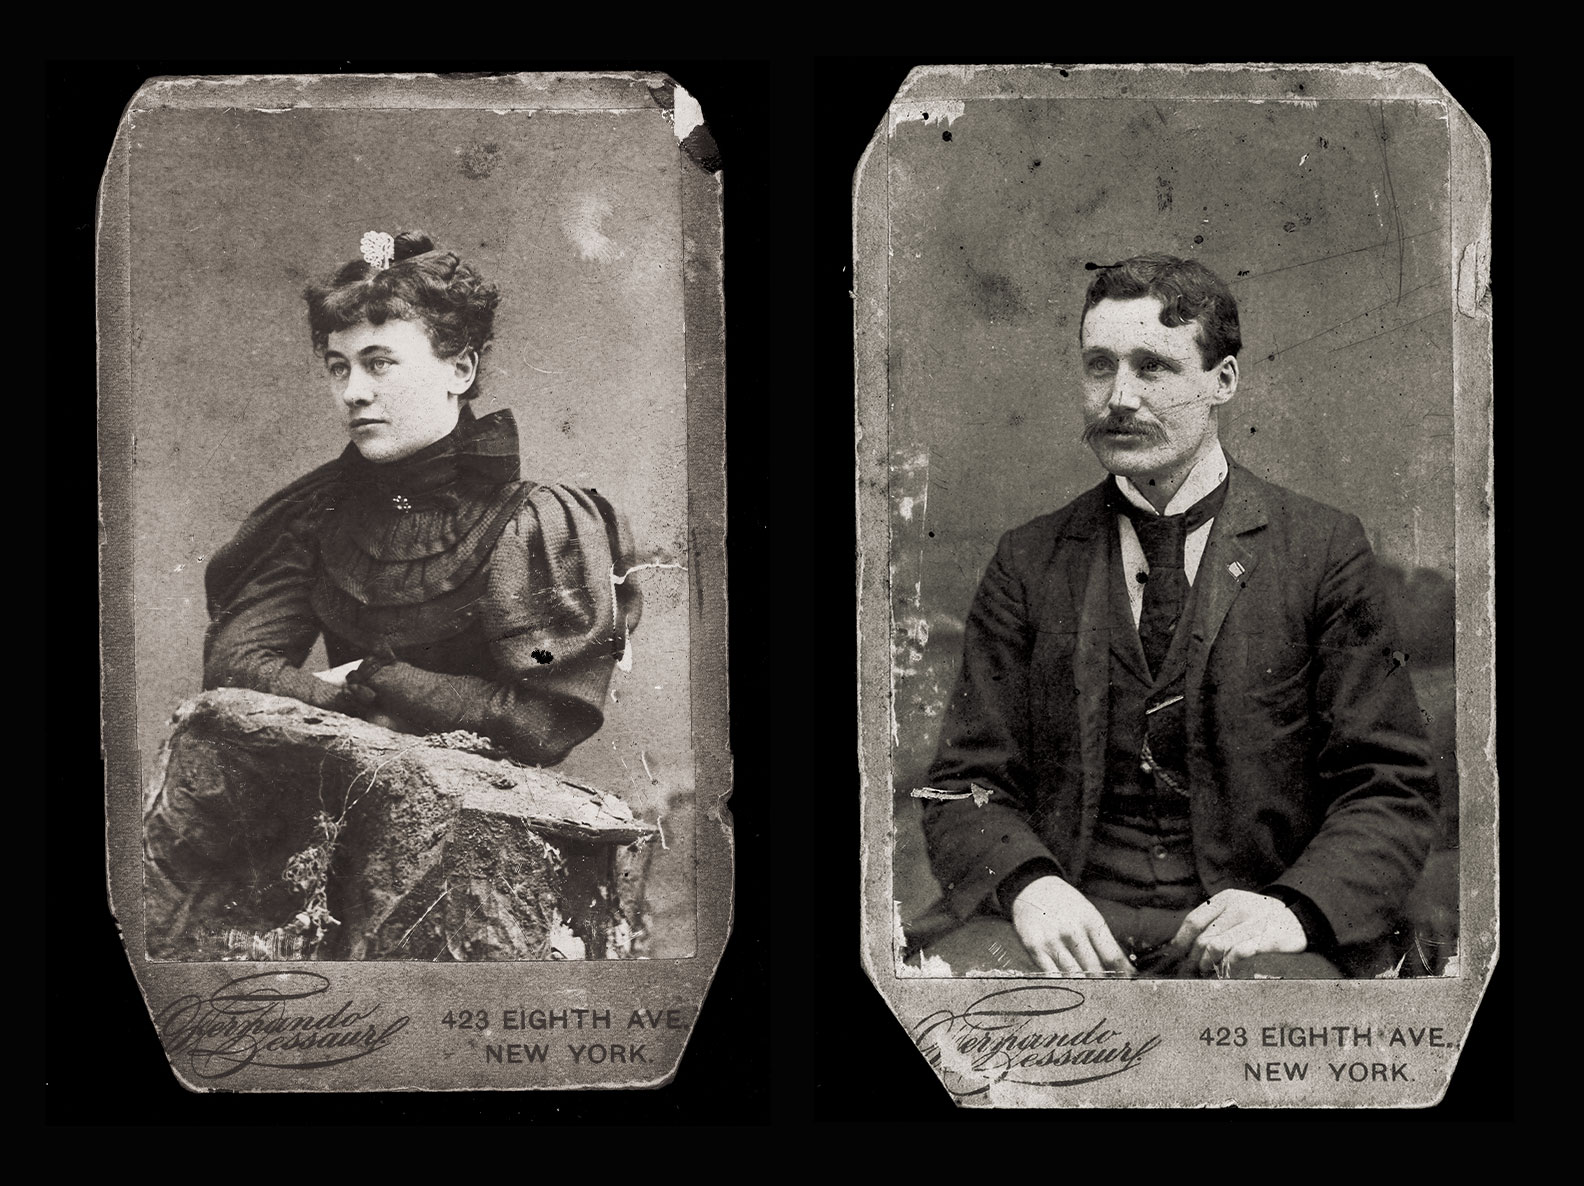 Photo portraits of Jane and Roger Hanrahan circa 1895